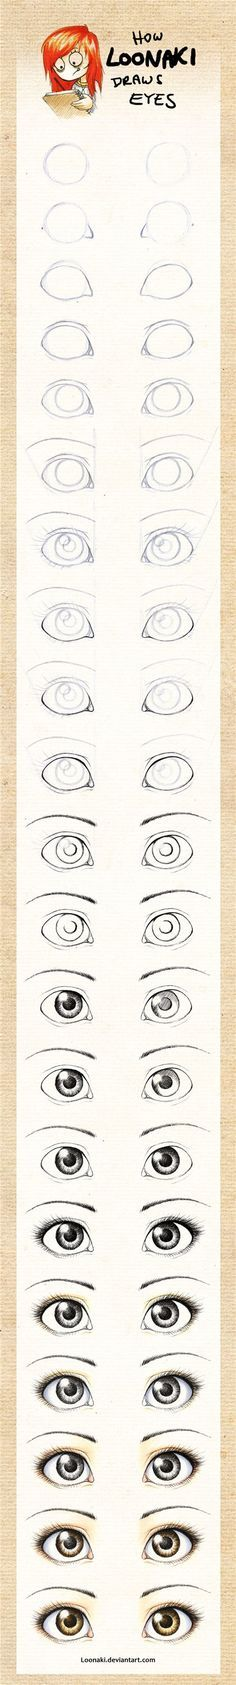 How to draw eyes                                                                                                                                                                                 More